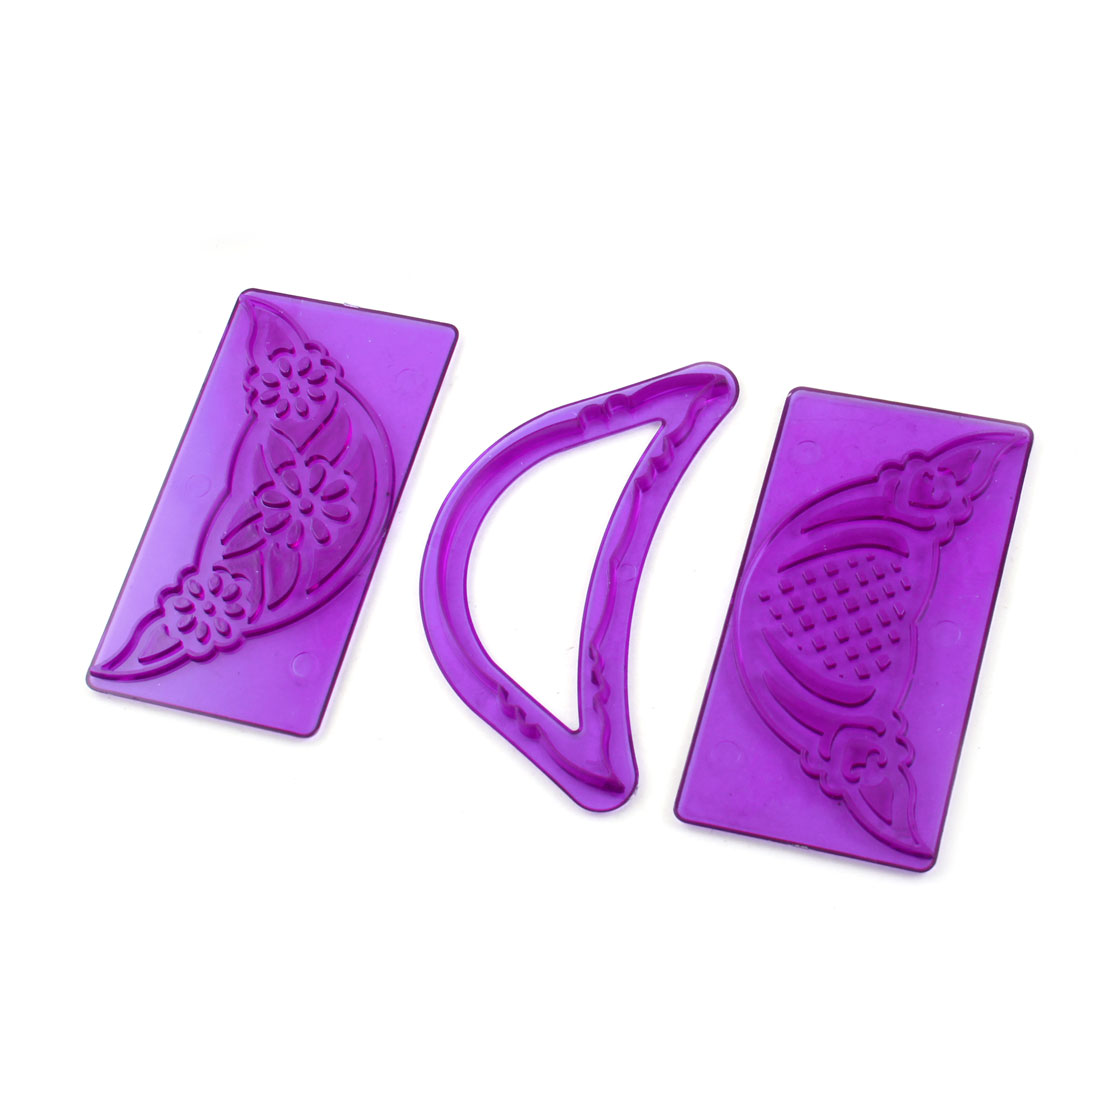 Ribbon Frilling Embosser Decorating Sugarcraft Cutter Cake Mold Purple 3pcs